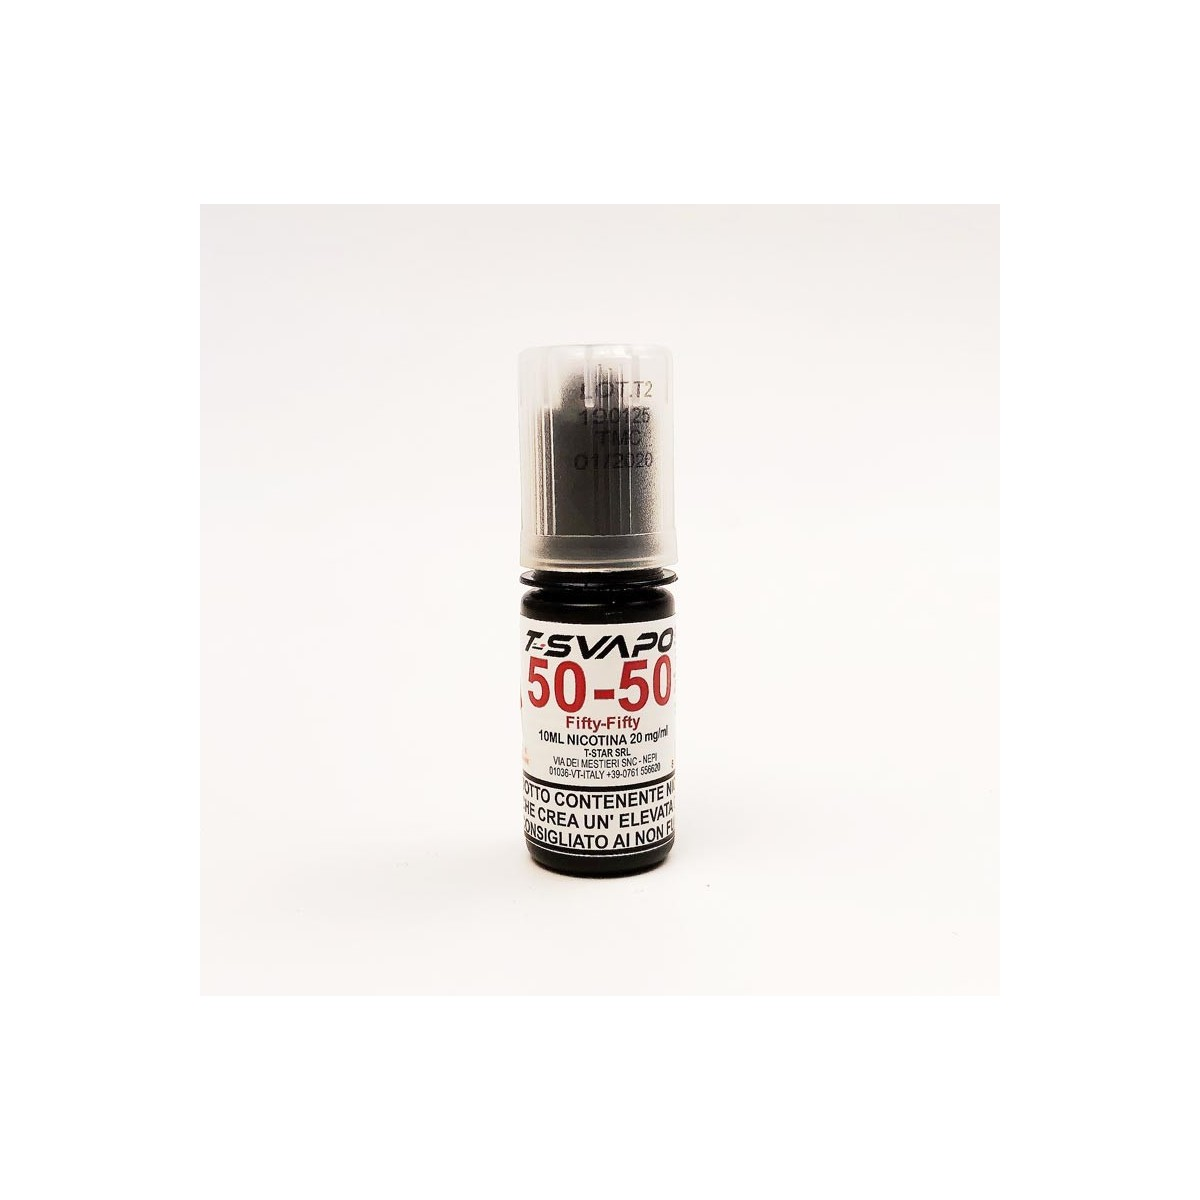 FLACONE BOOSTER FIFTY/FIFTY 10ML NICOTINA 20MG/ML T-SVAPO